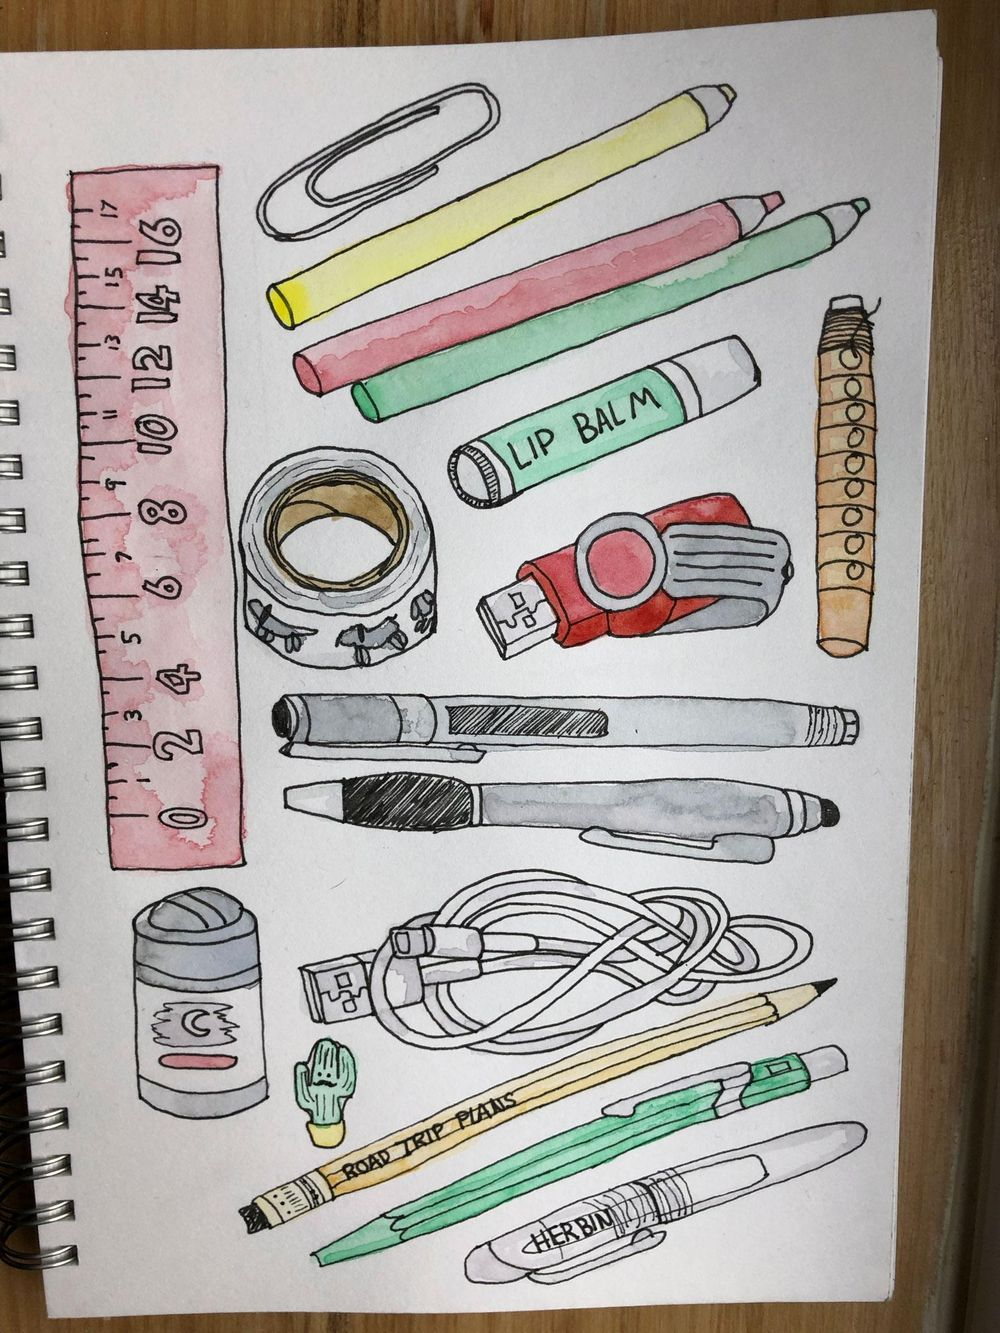 Everything in my pencil case - image 1 - student project